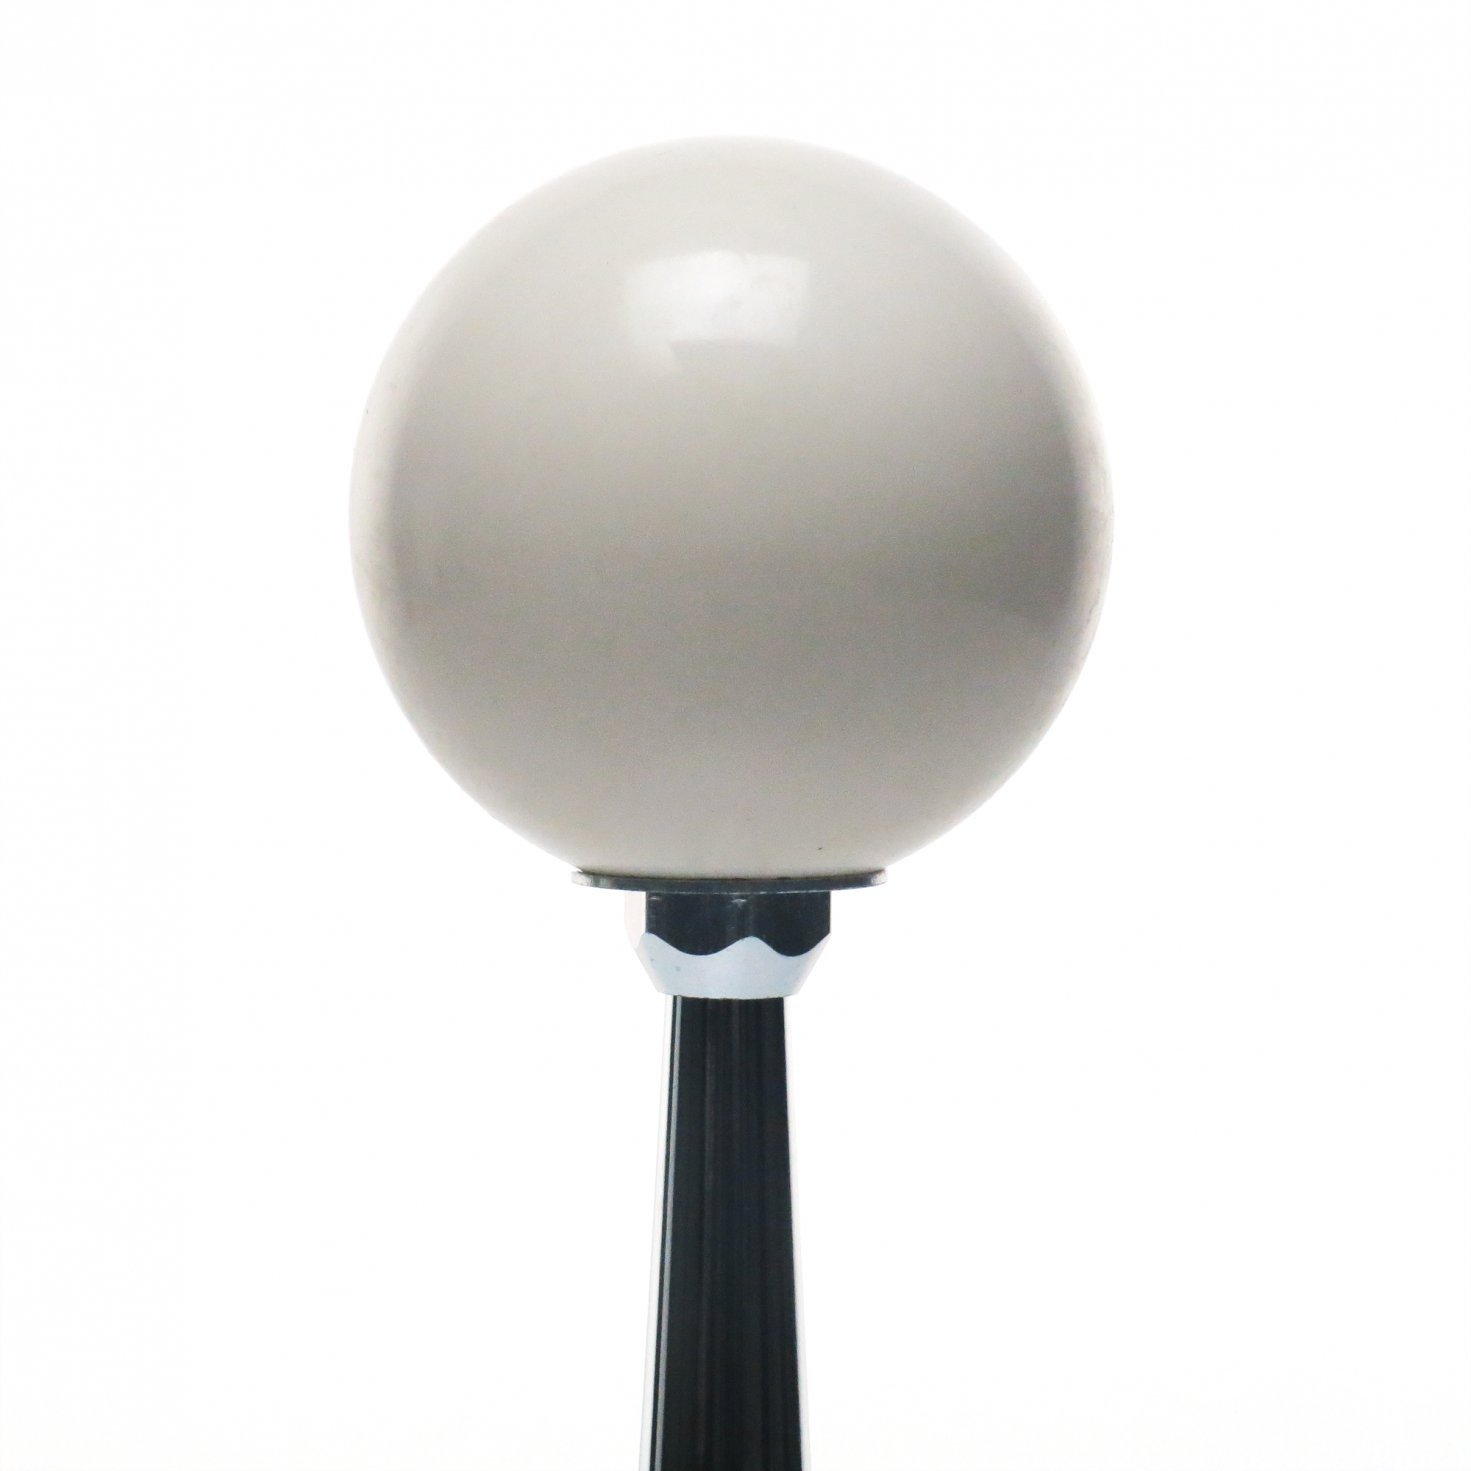 Orange 96 Mustang American Shifter 138759 Ivory Shift Knob with M16 x 1.5 Insert